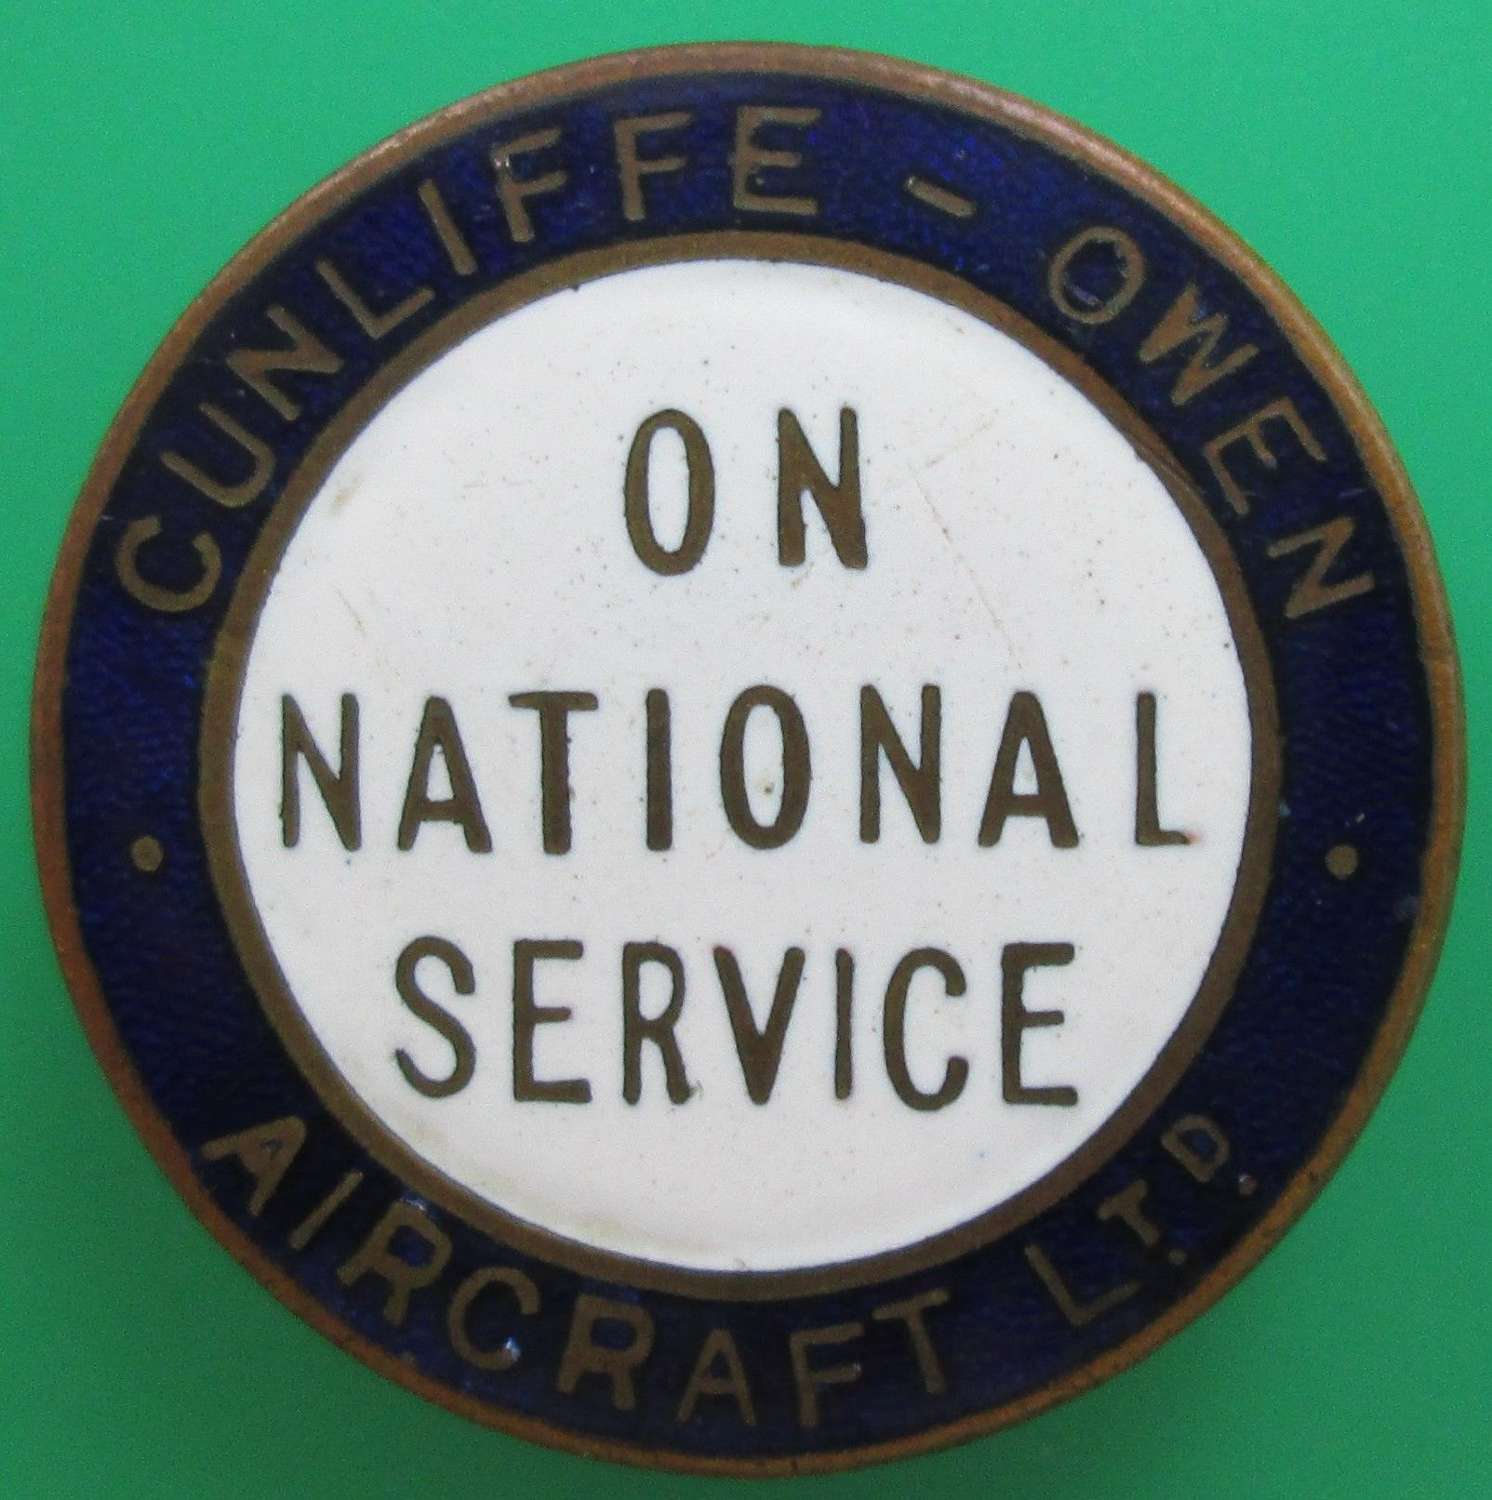 AN ON NATIONAL SERVICE LAPEL BADGE FOR CUNLIFFE OWEN AIRCRAFT LTD